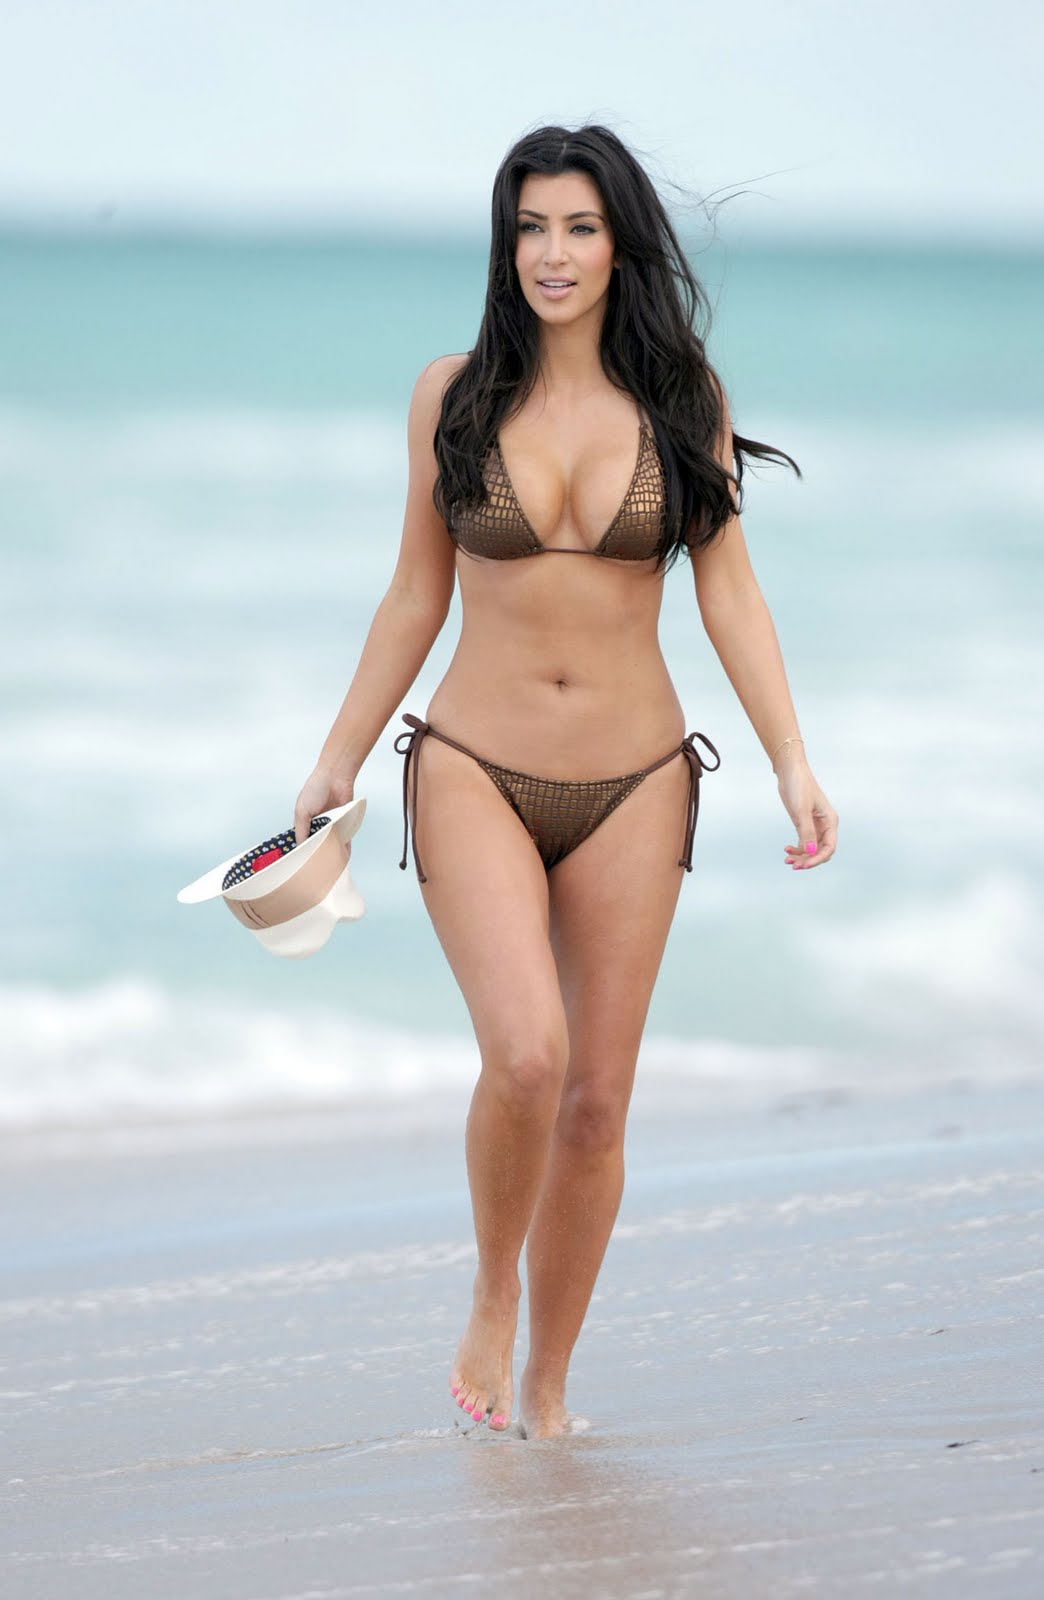 kim kardashian in sexy bikini at beach+%25284%2529 Gay glory hole picture sperm. Lenght 11 min.